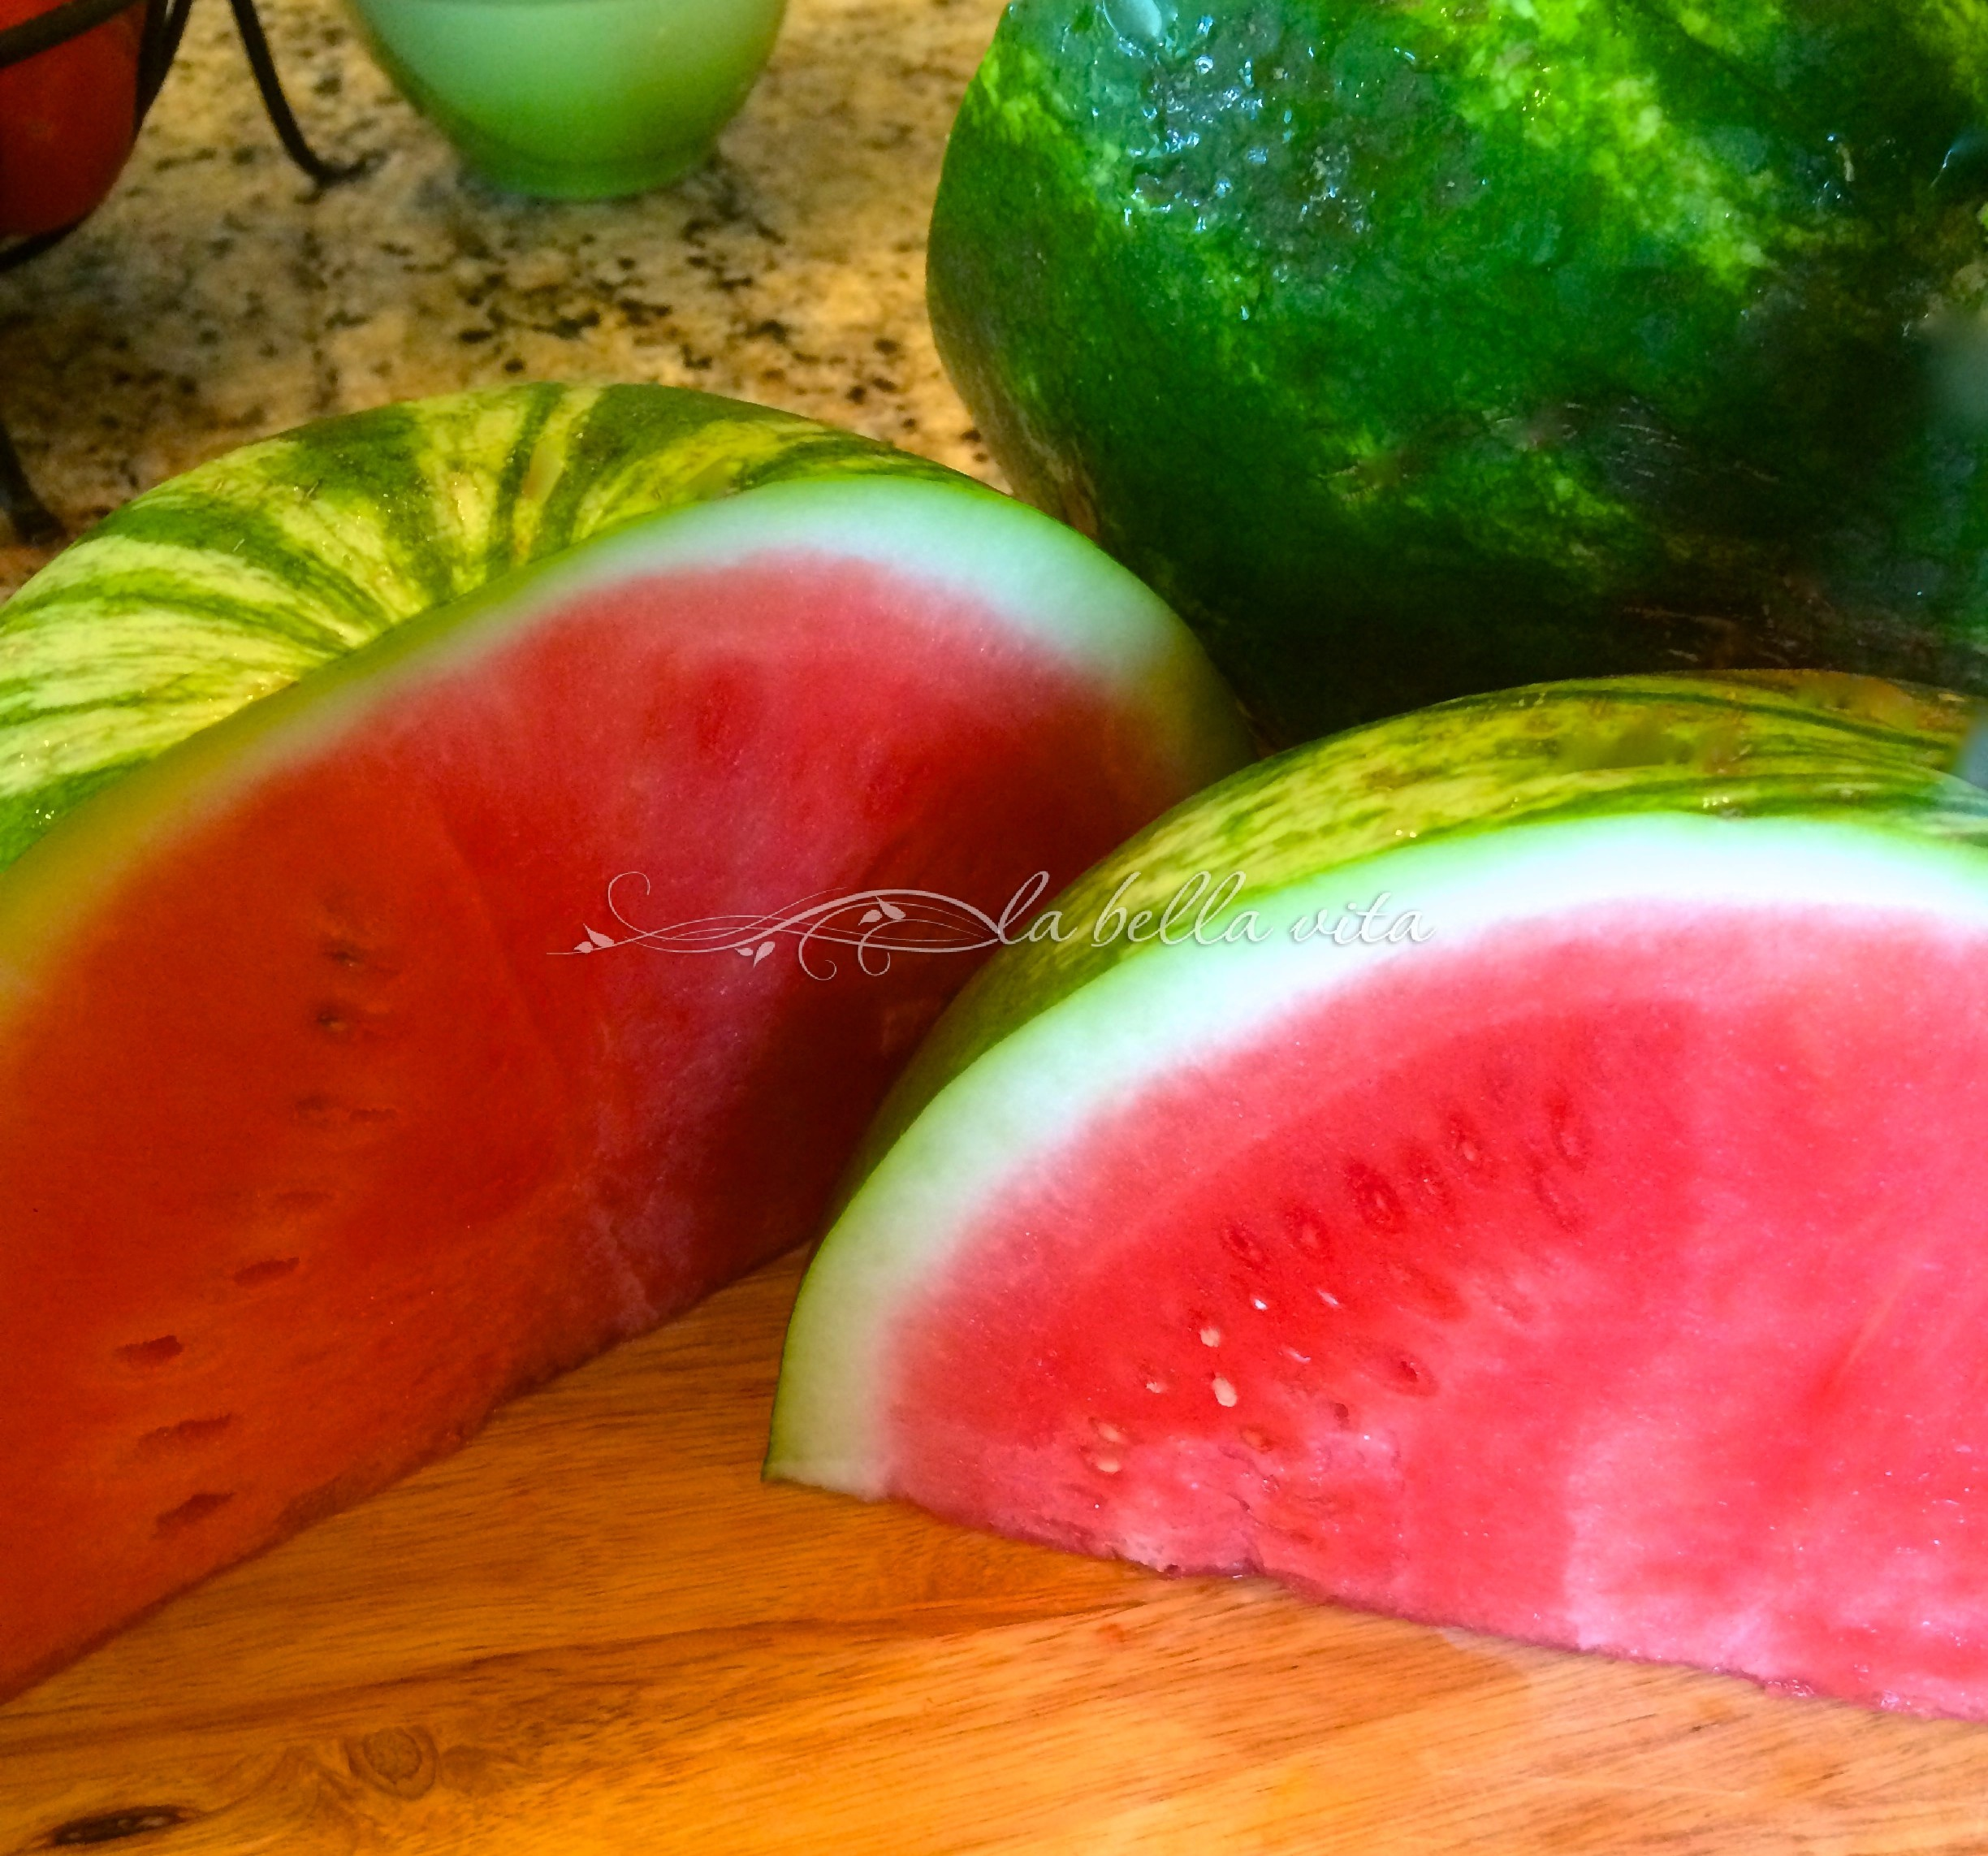 ... the brilliant rose-pink-red color of a fresh watermelon is so PRETTY